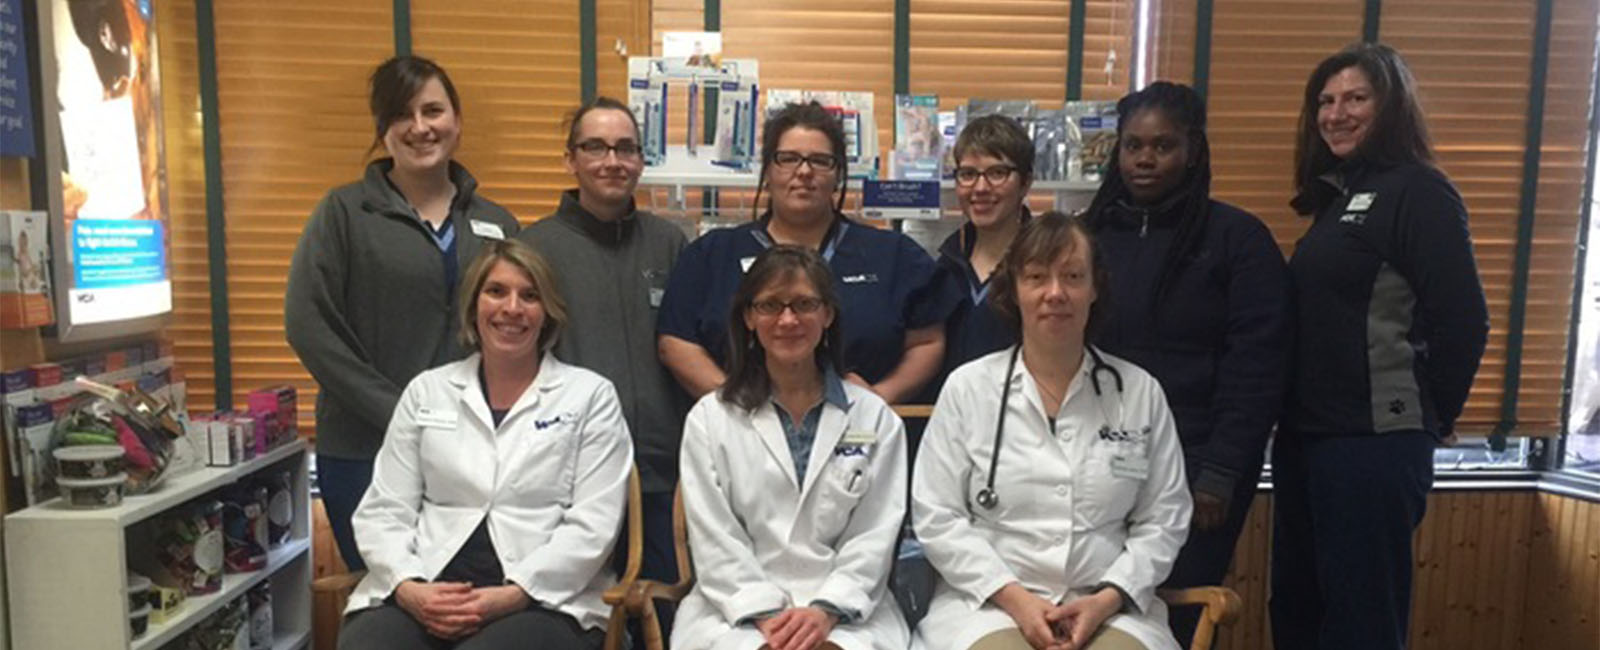 Homepage Team Picture of VCA City Cats Hospital